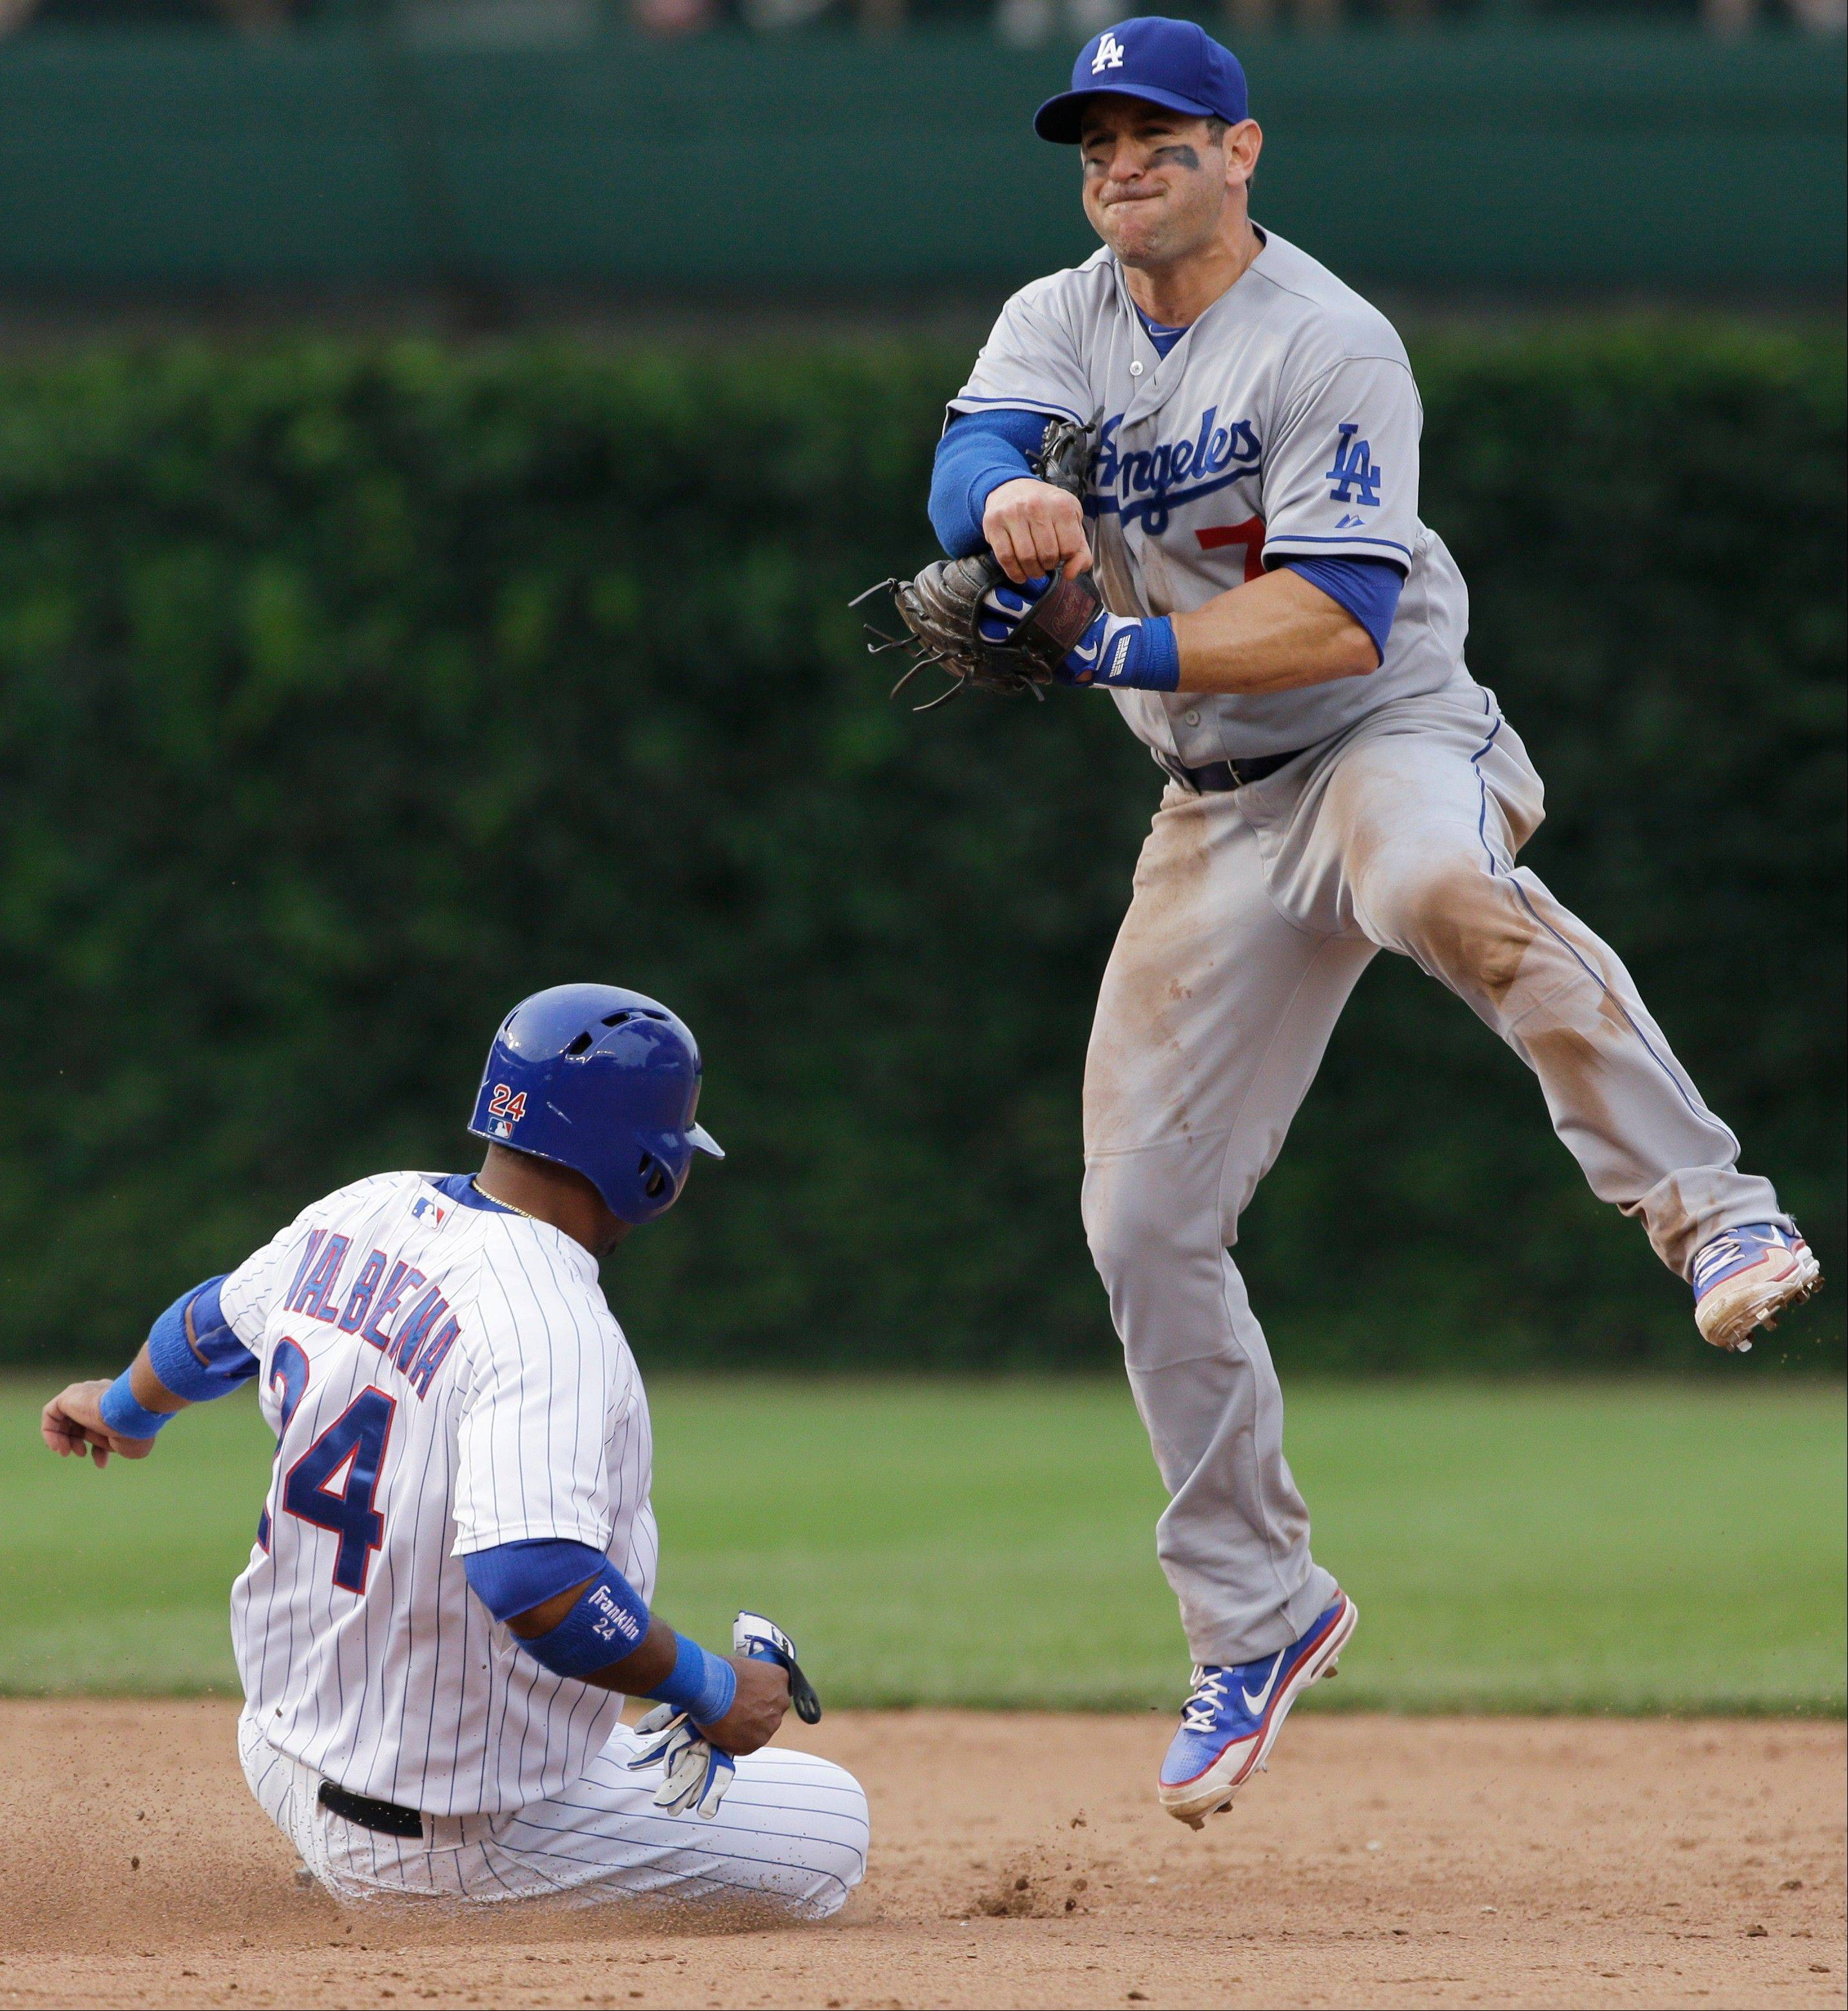 Los Angeles Dodgers shortstop Nick Punto, right, looks to the first after forcing out Chicago Cubs' Luis Valbuena, left, during the sixth inning of a baseball game on Friday, Aug. 2, 2013, in Chicago Cubs' David DeJesus was out at first base.